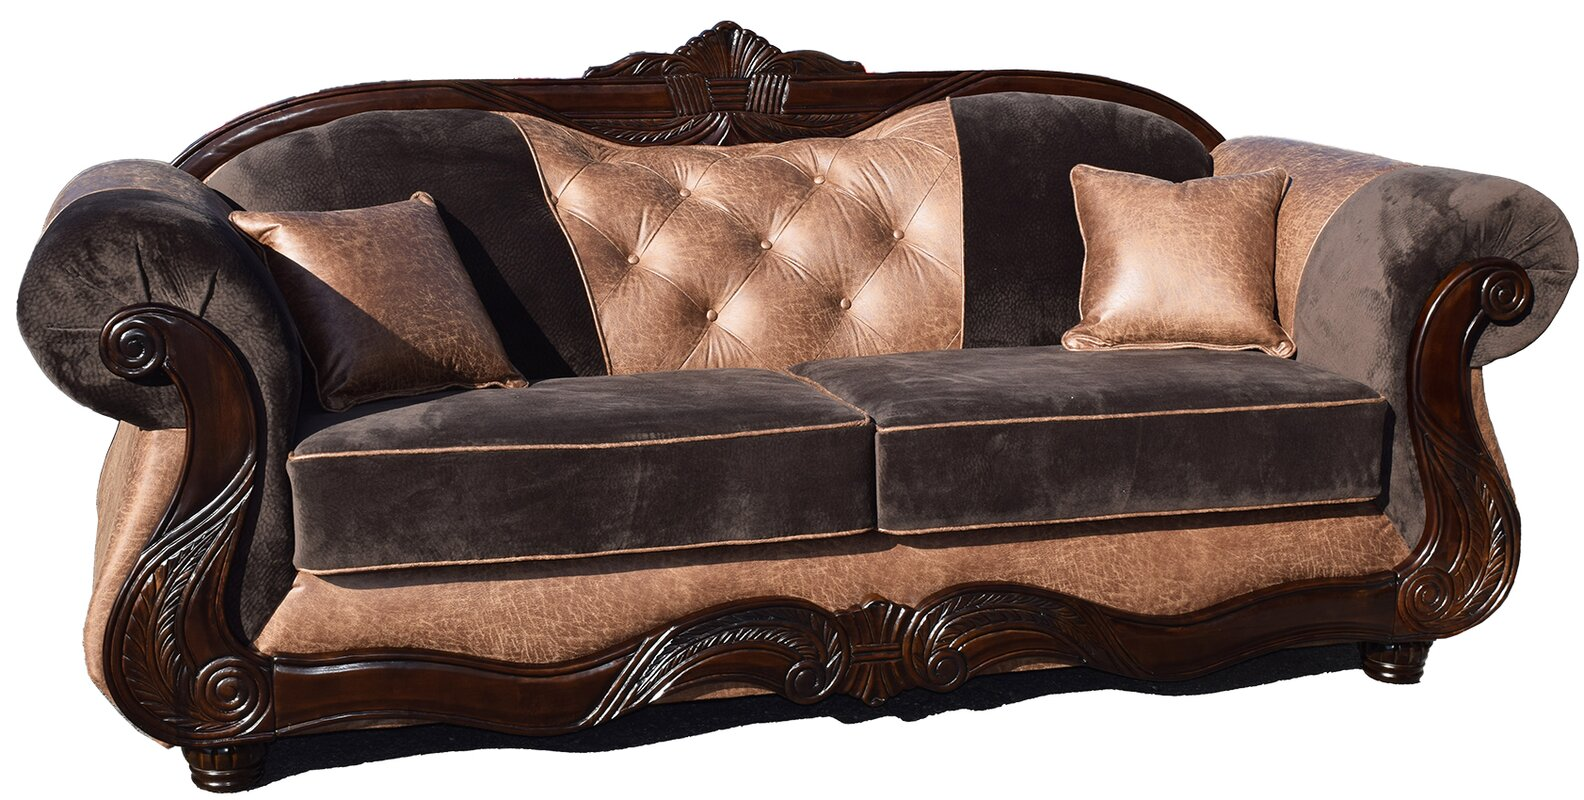 Gardenasofa bellagio 2 piece leather living room set 2 piece leather living room set